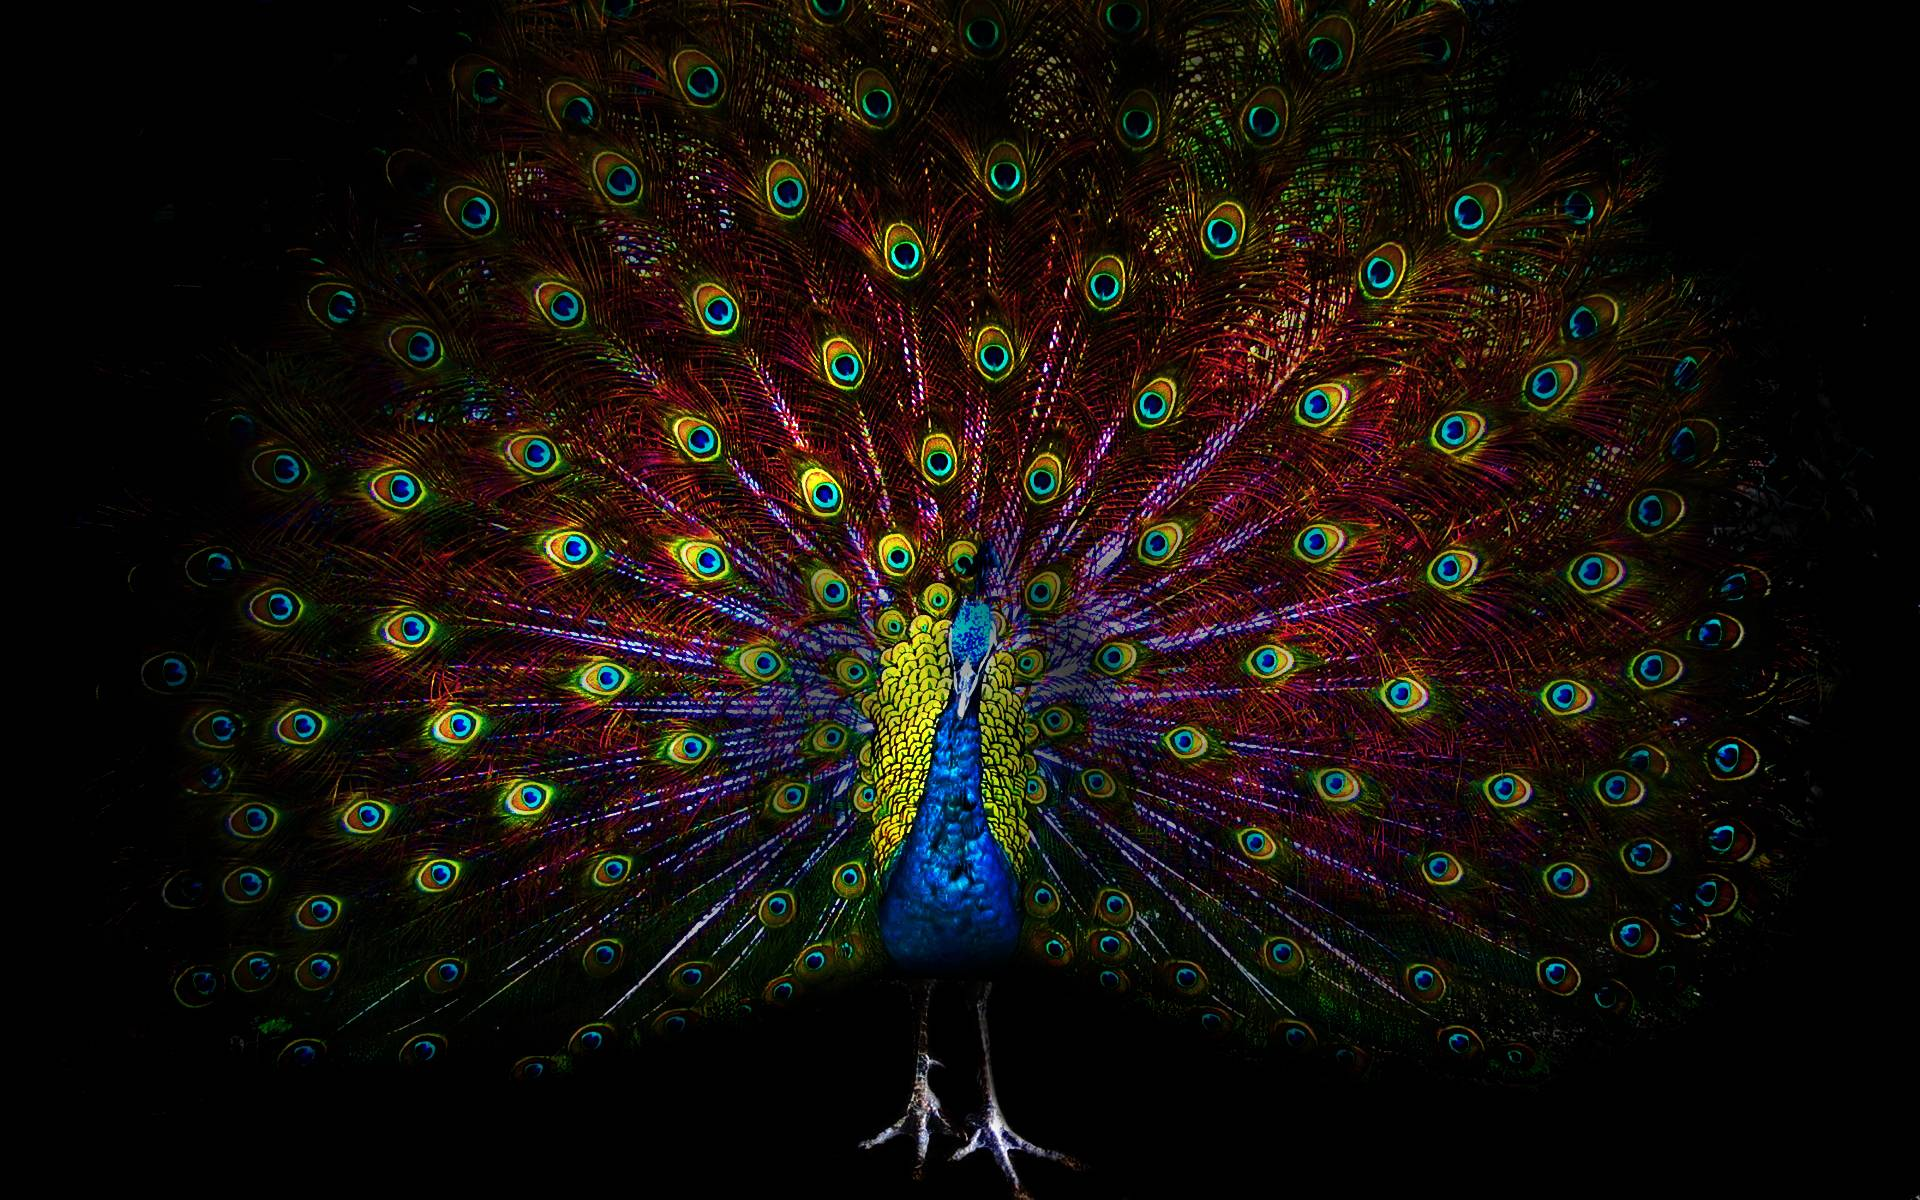 Peacock Wallpapers Desktop - Wallpaper Cave